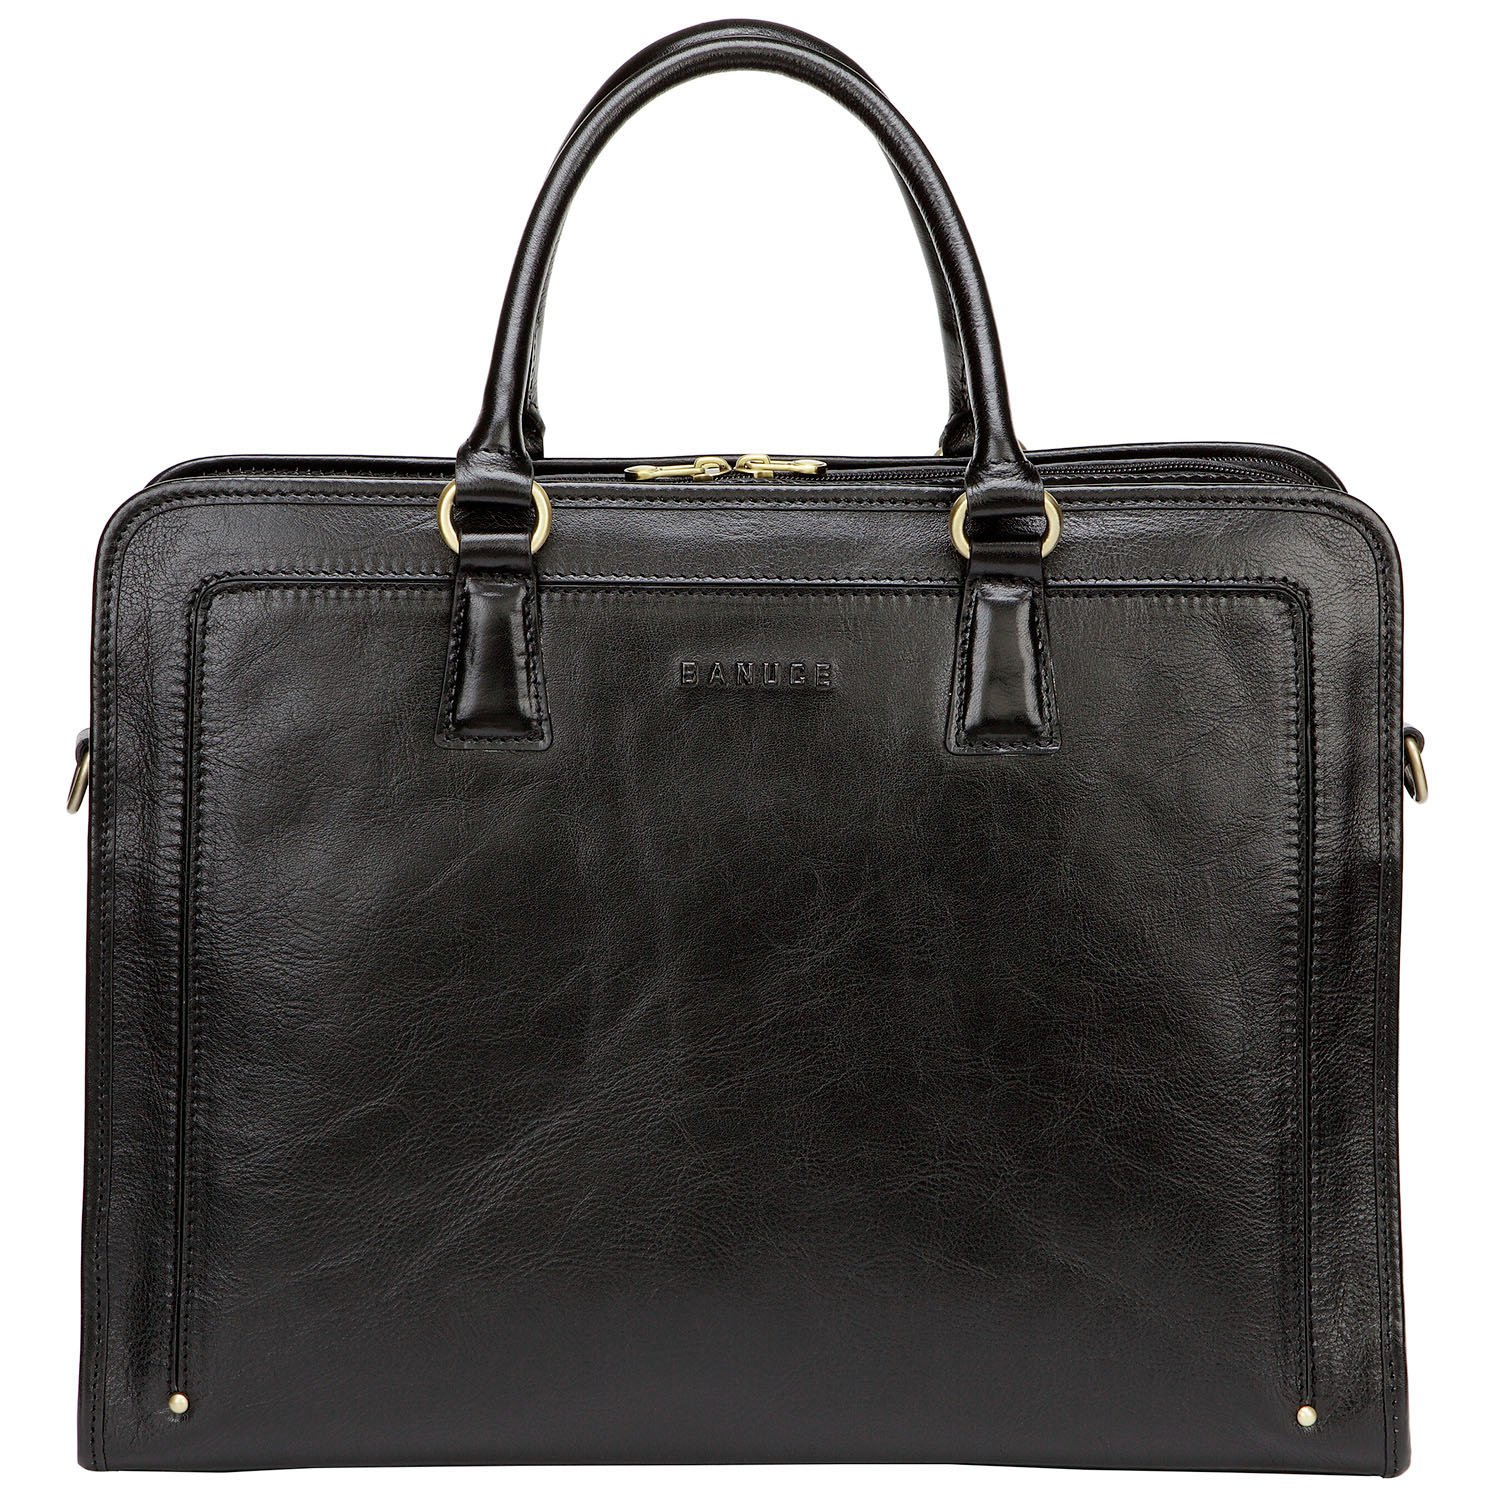 Banuce Full Grain Leather Briefcase for Women 14 inch Laptop Bag Business Tote Satchel Bag Shoulder Attache Case Black